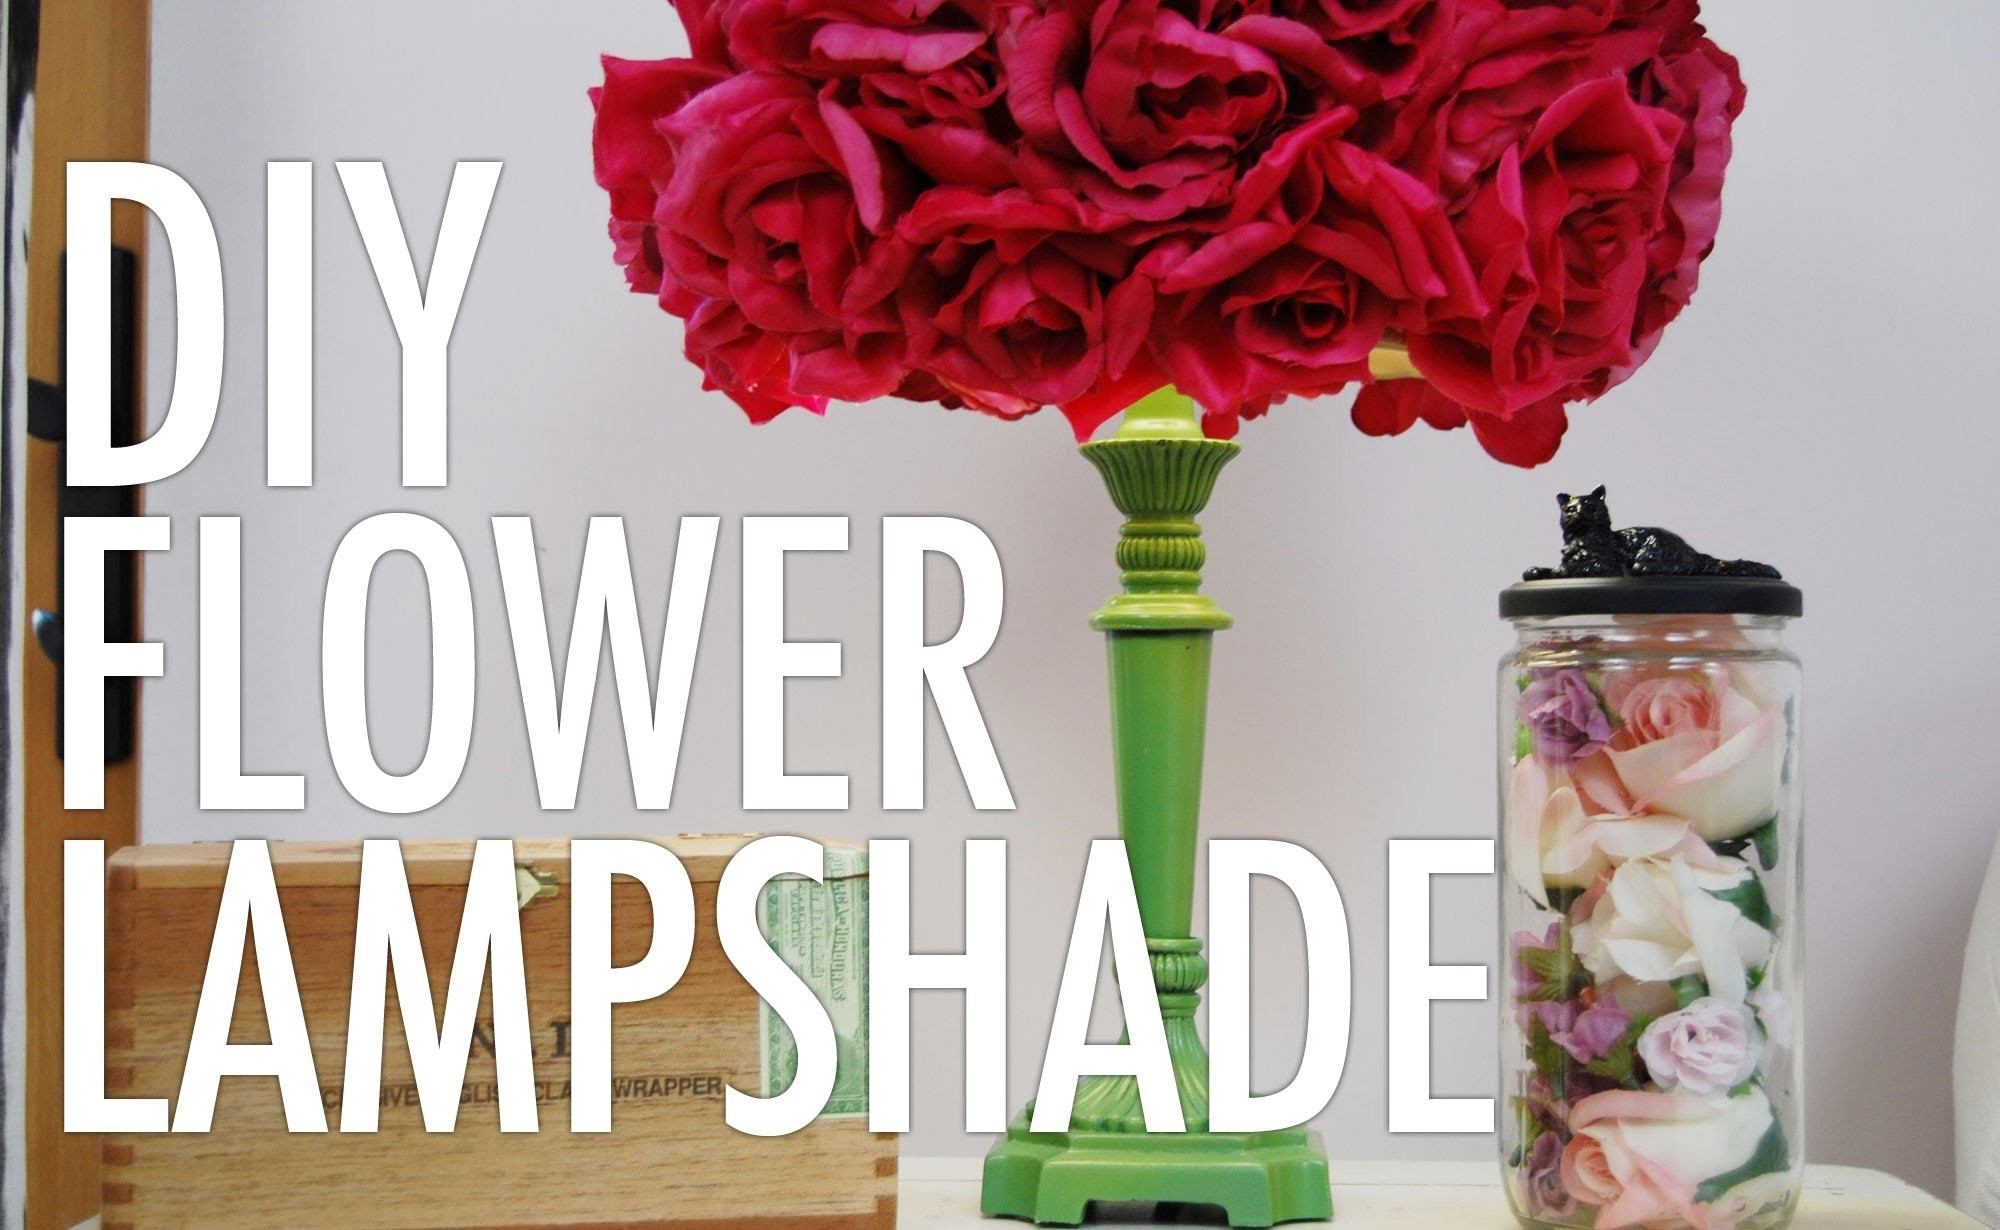 DIY Flower Lampshade with Mr. Kate